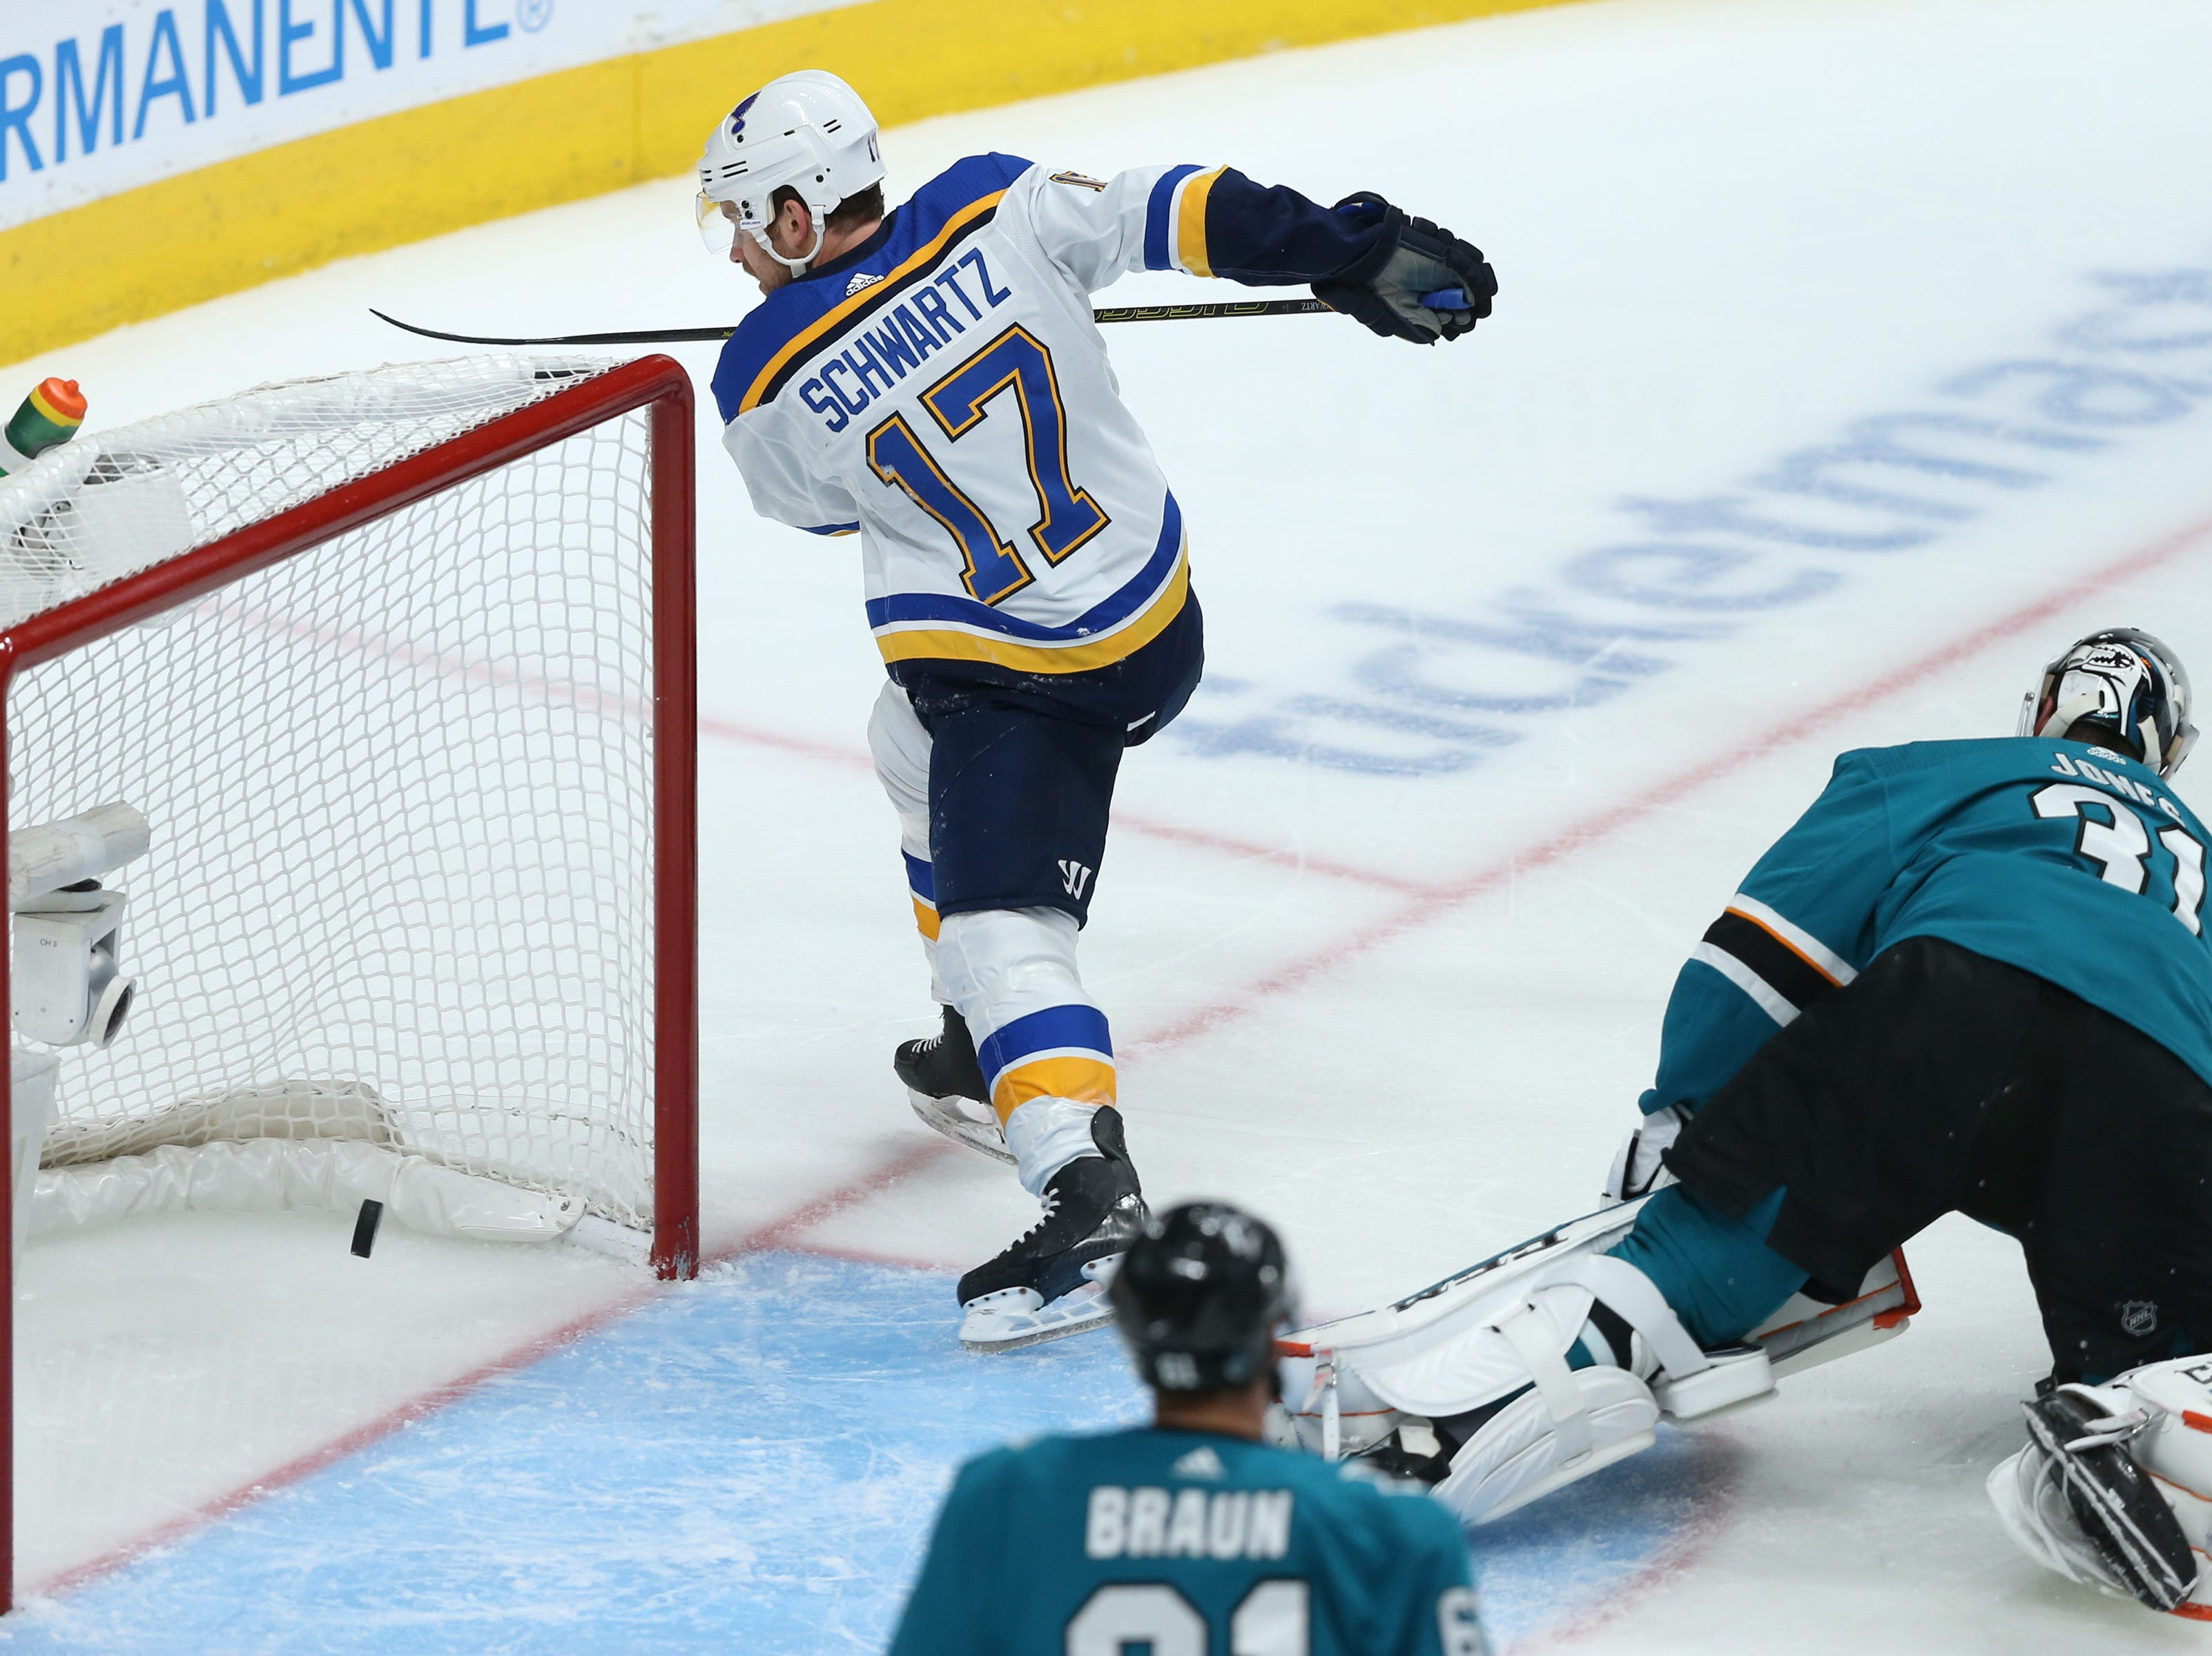 Conference finals: St. Louis Blues forward Jaden Schwartz scores a goal during the second period of the Game 5 win against the San Jose Sharks.